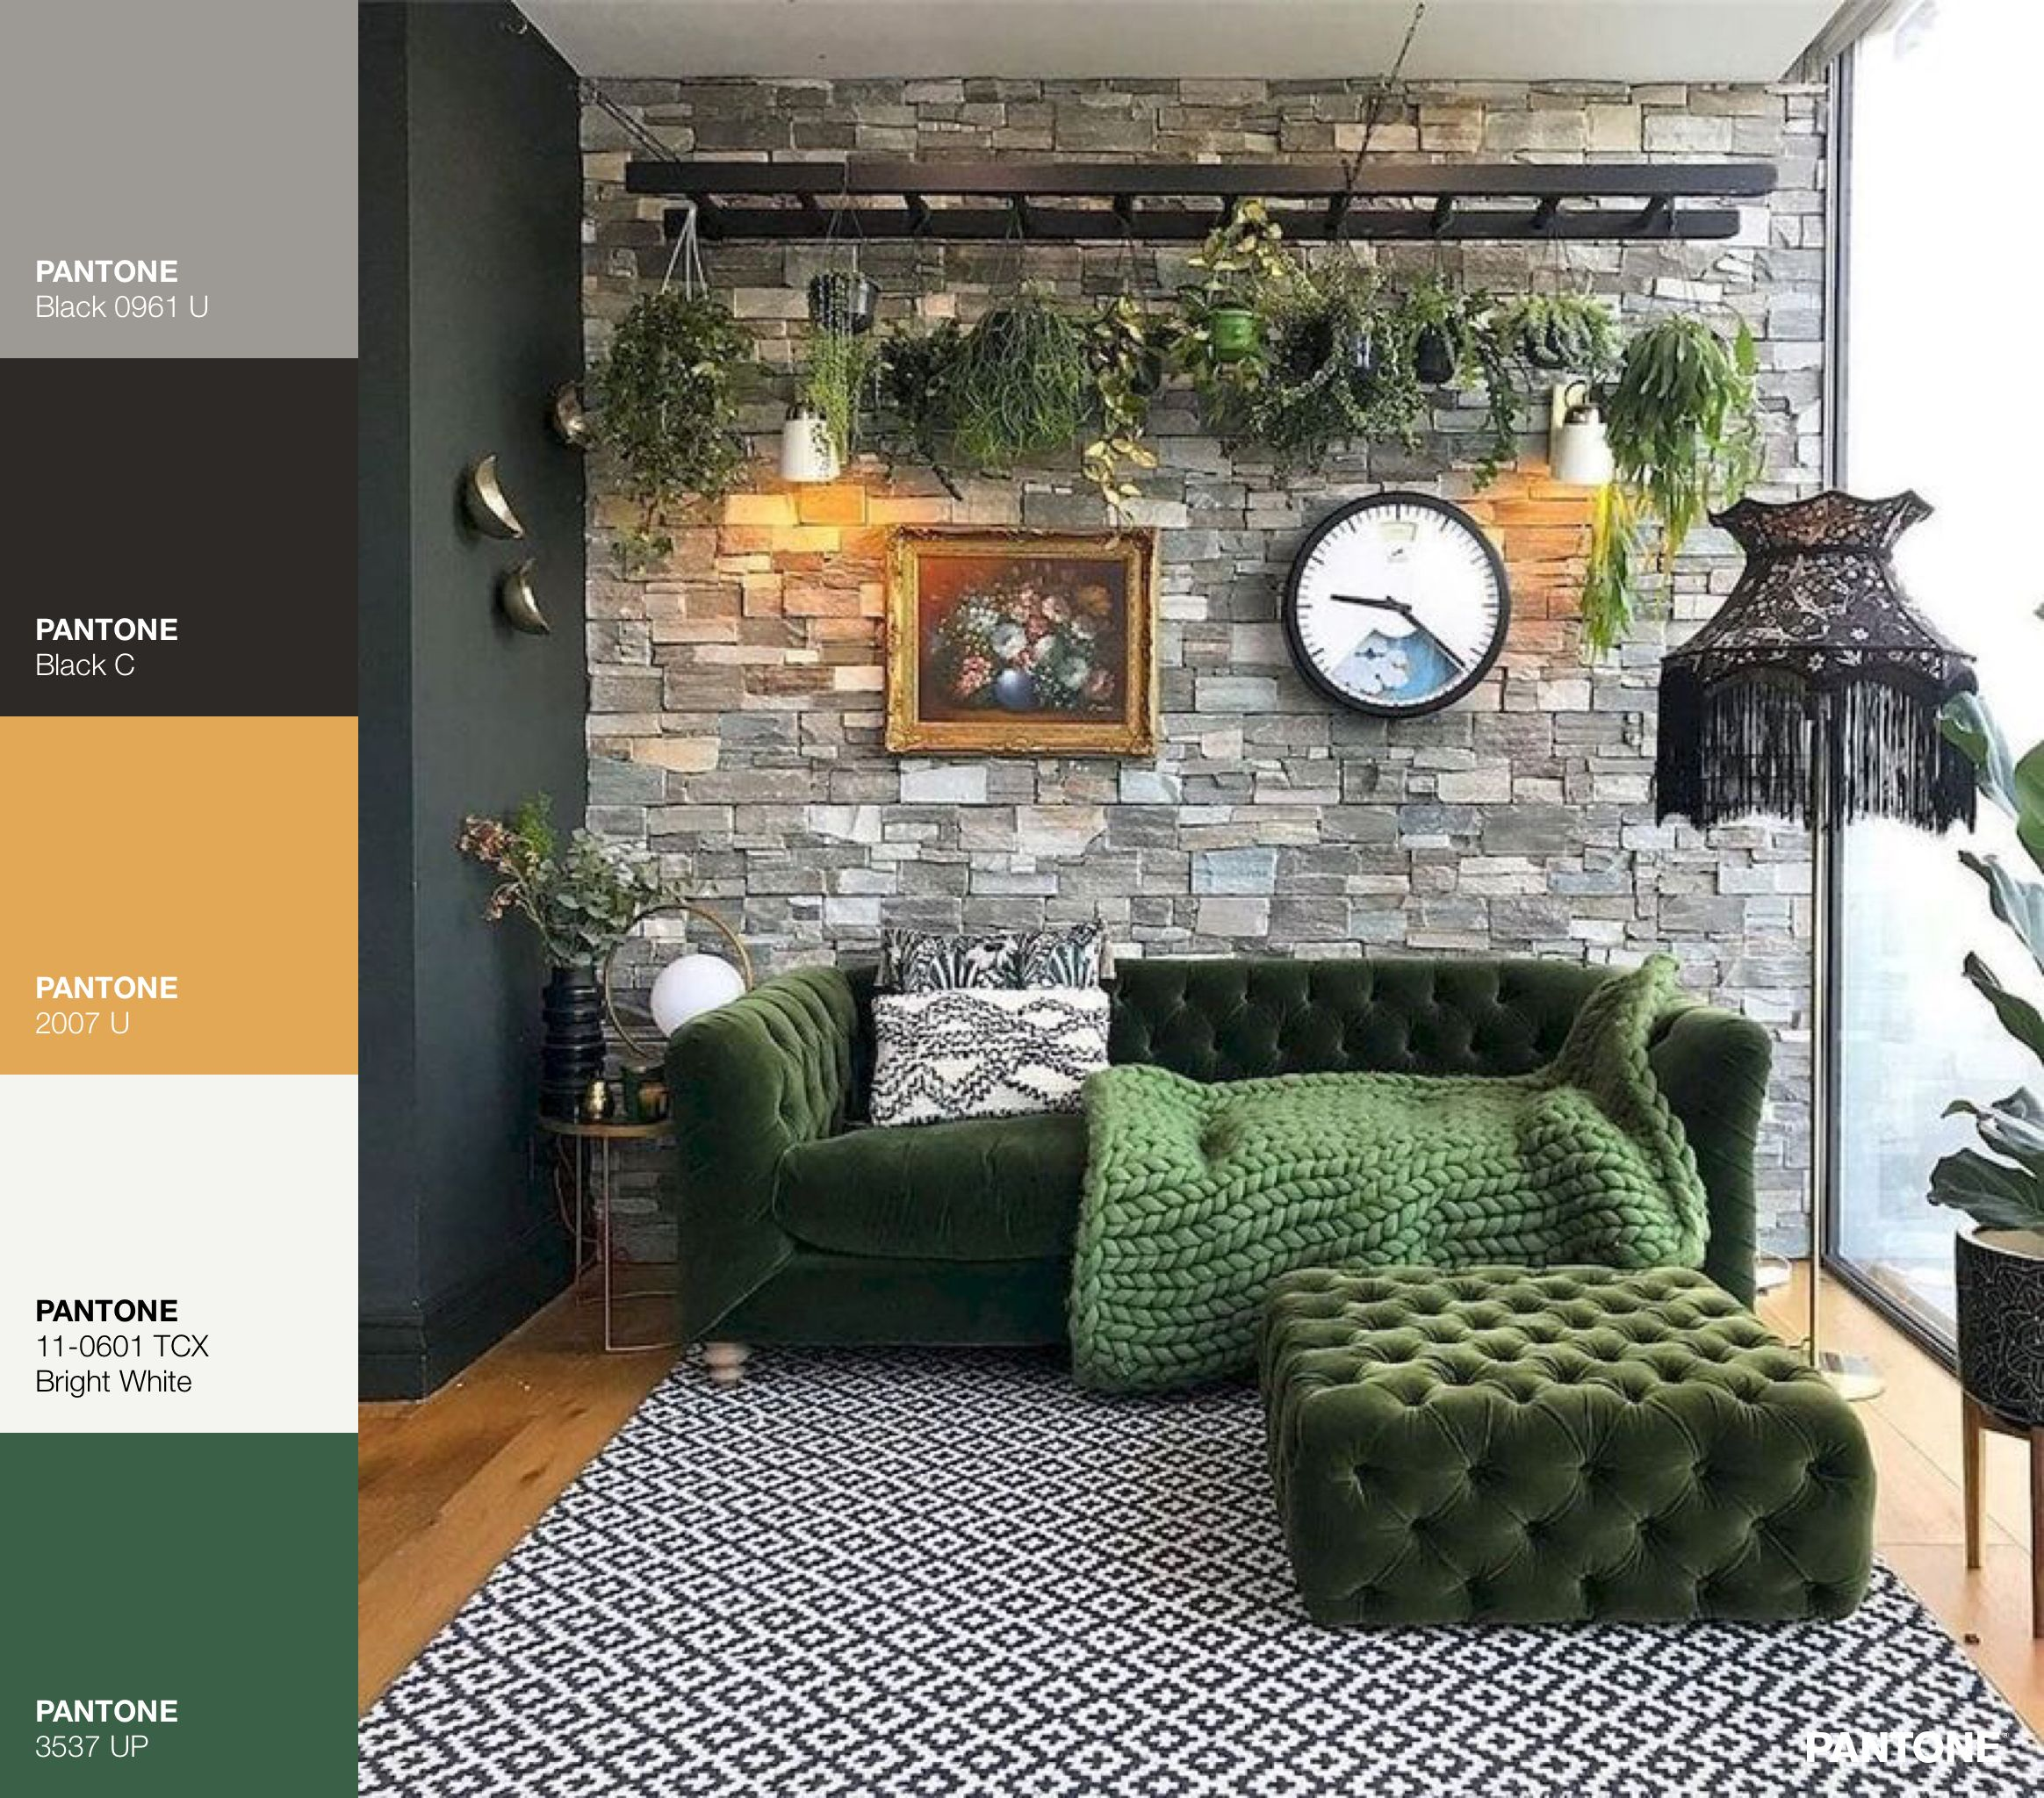 Living Room Furniture And Dark Green Walls In Medium Gray Accents In Mustard Bla Accent Walls In Living Room Dark Green Living Room Green Living Room Decor